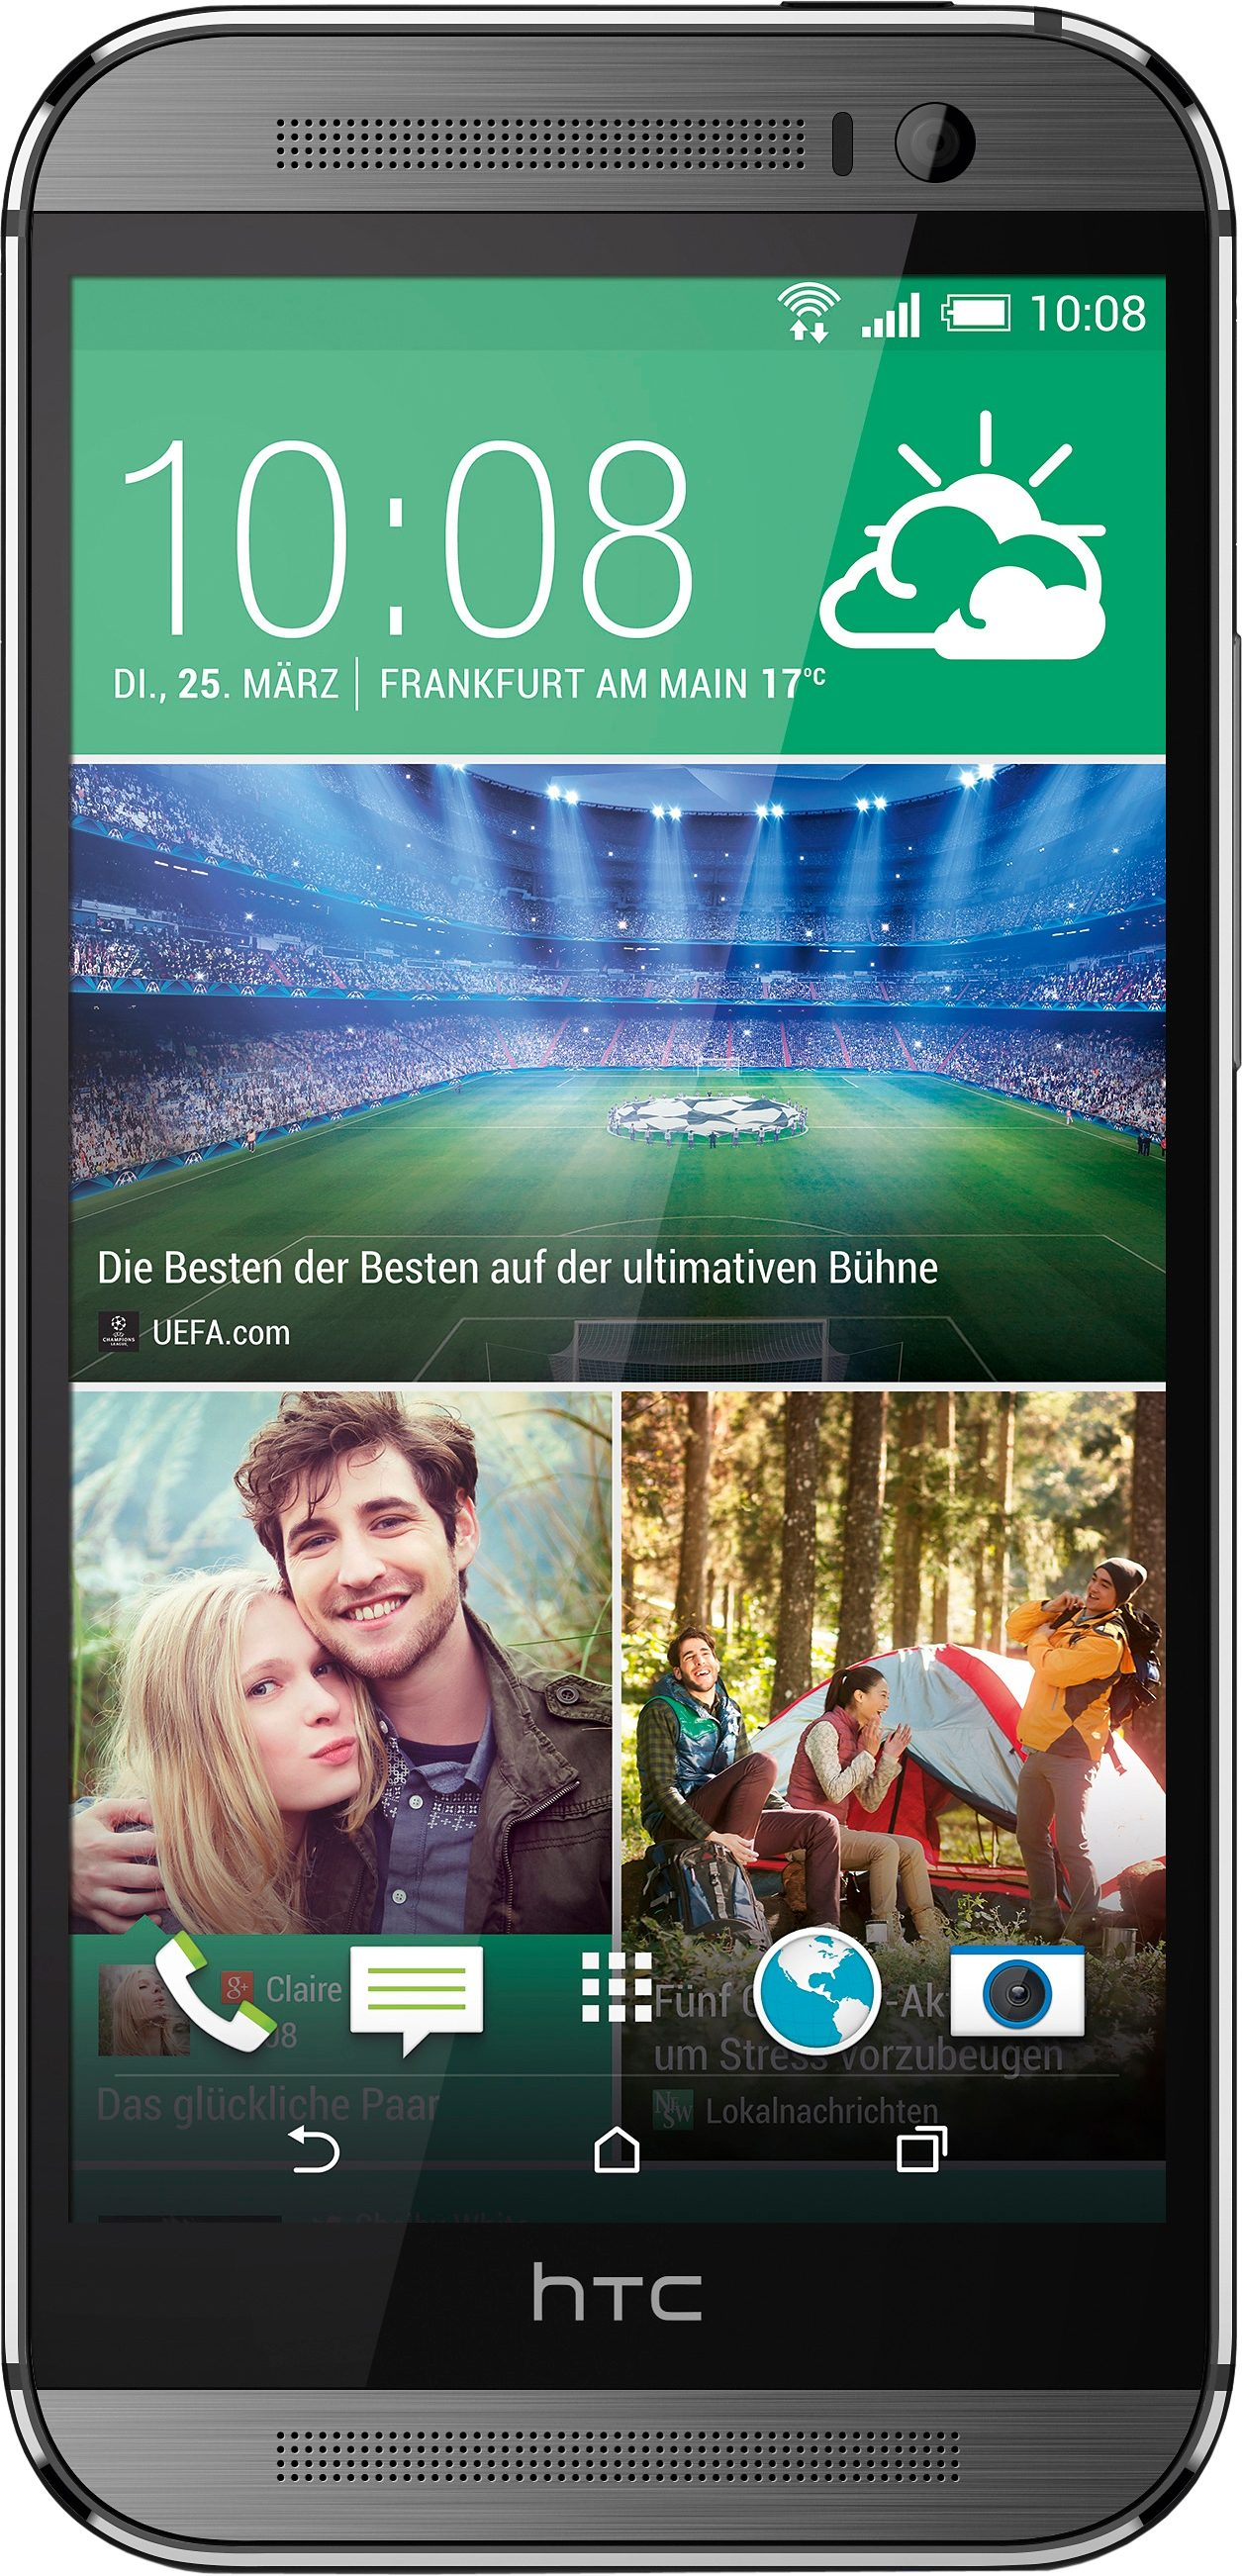 HTC One M8s Smartphone, 12,7 cm (5 Zoll) Display, LTE (4G), Android 5.0, 13,0 Megapixel, NFC